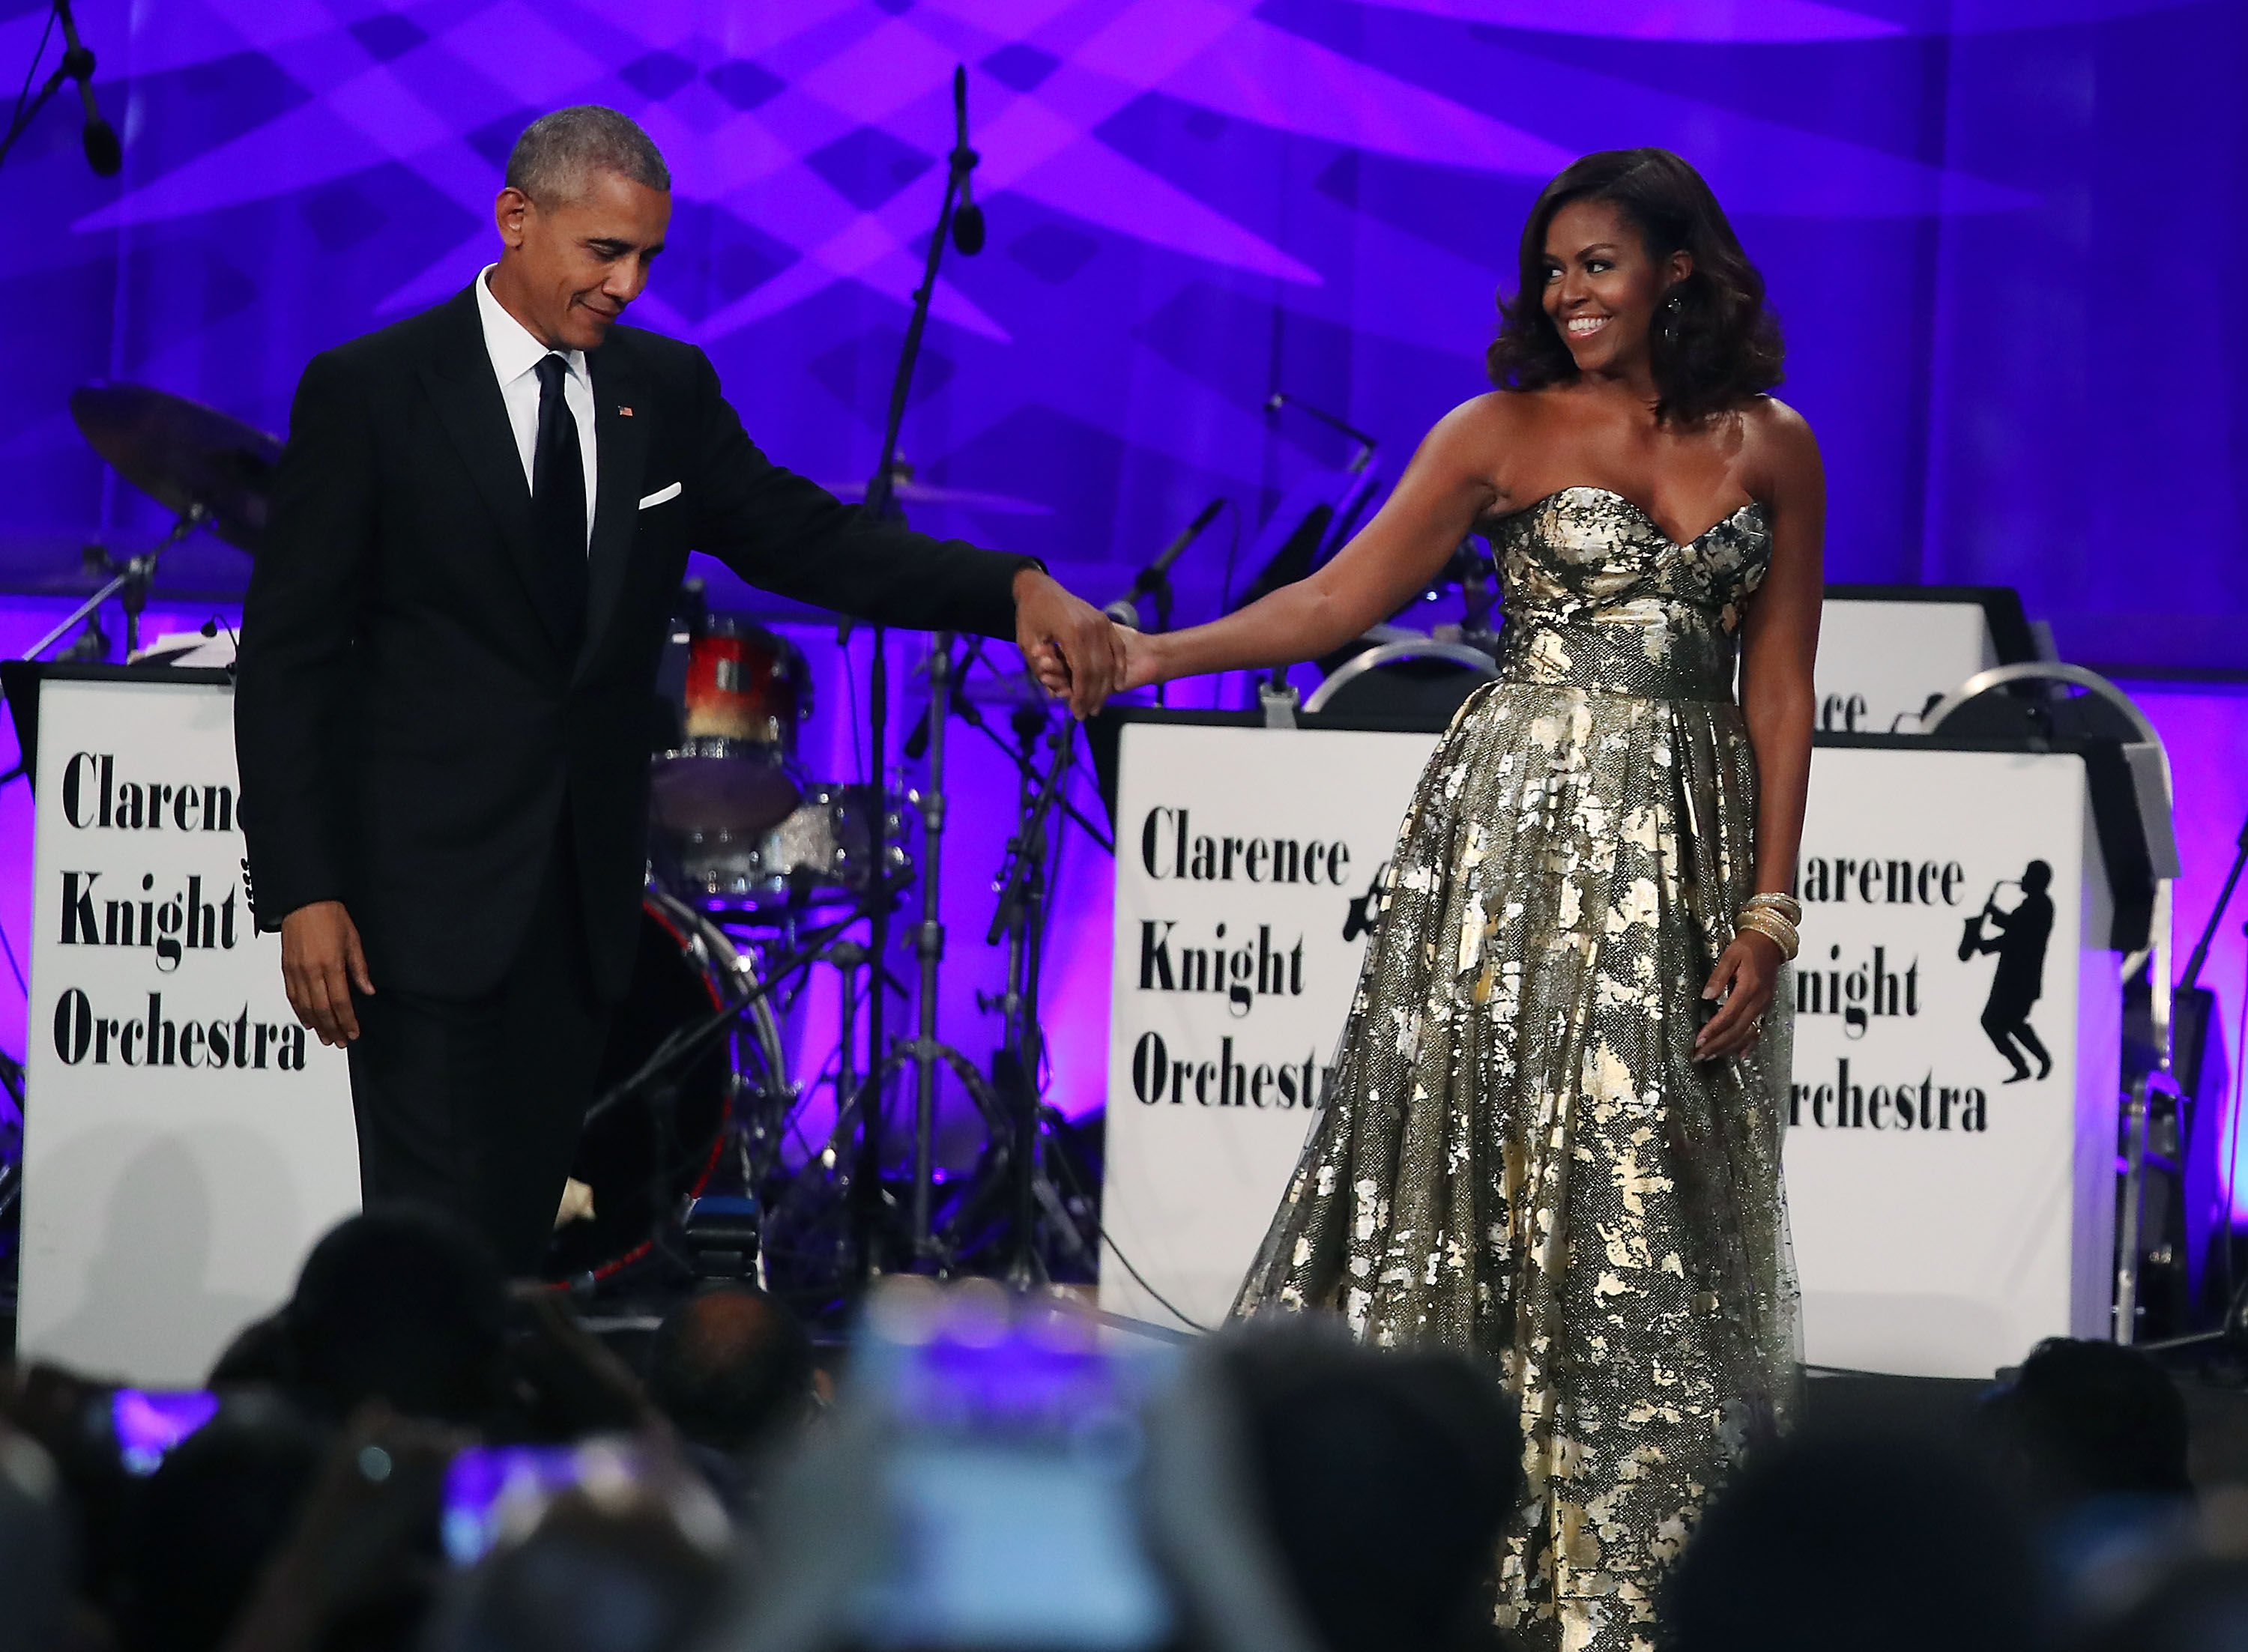 President Obama and Hillary Clinton Speak At The Congressional Black Caucus' Annual Phoenix Awards